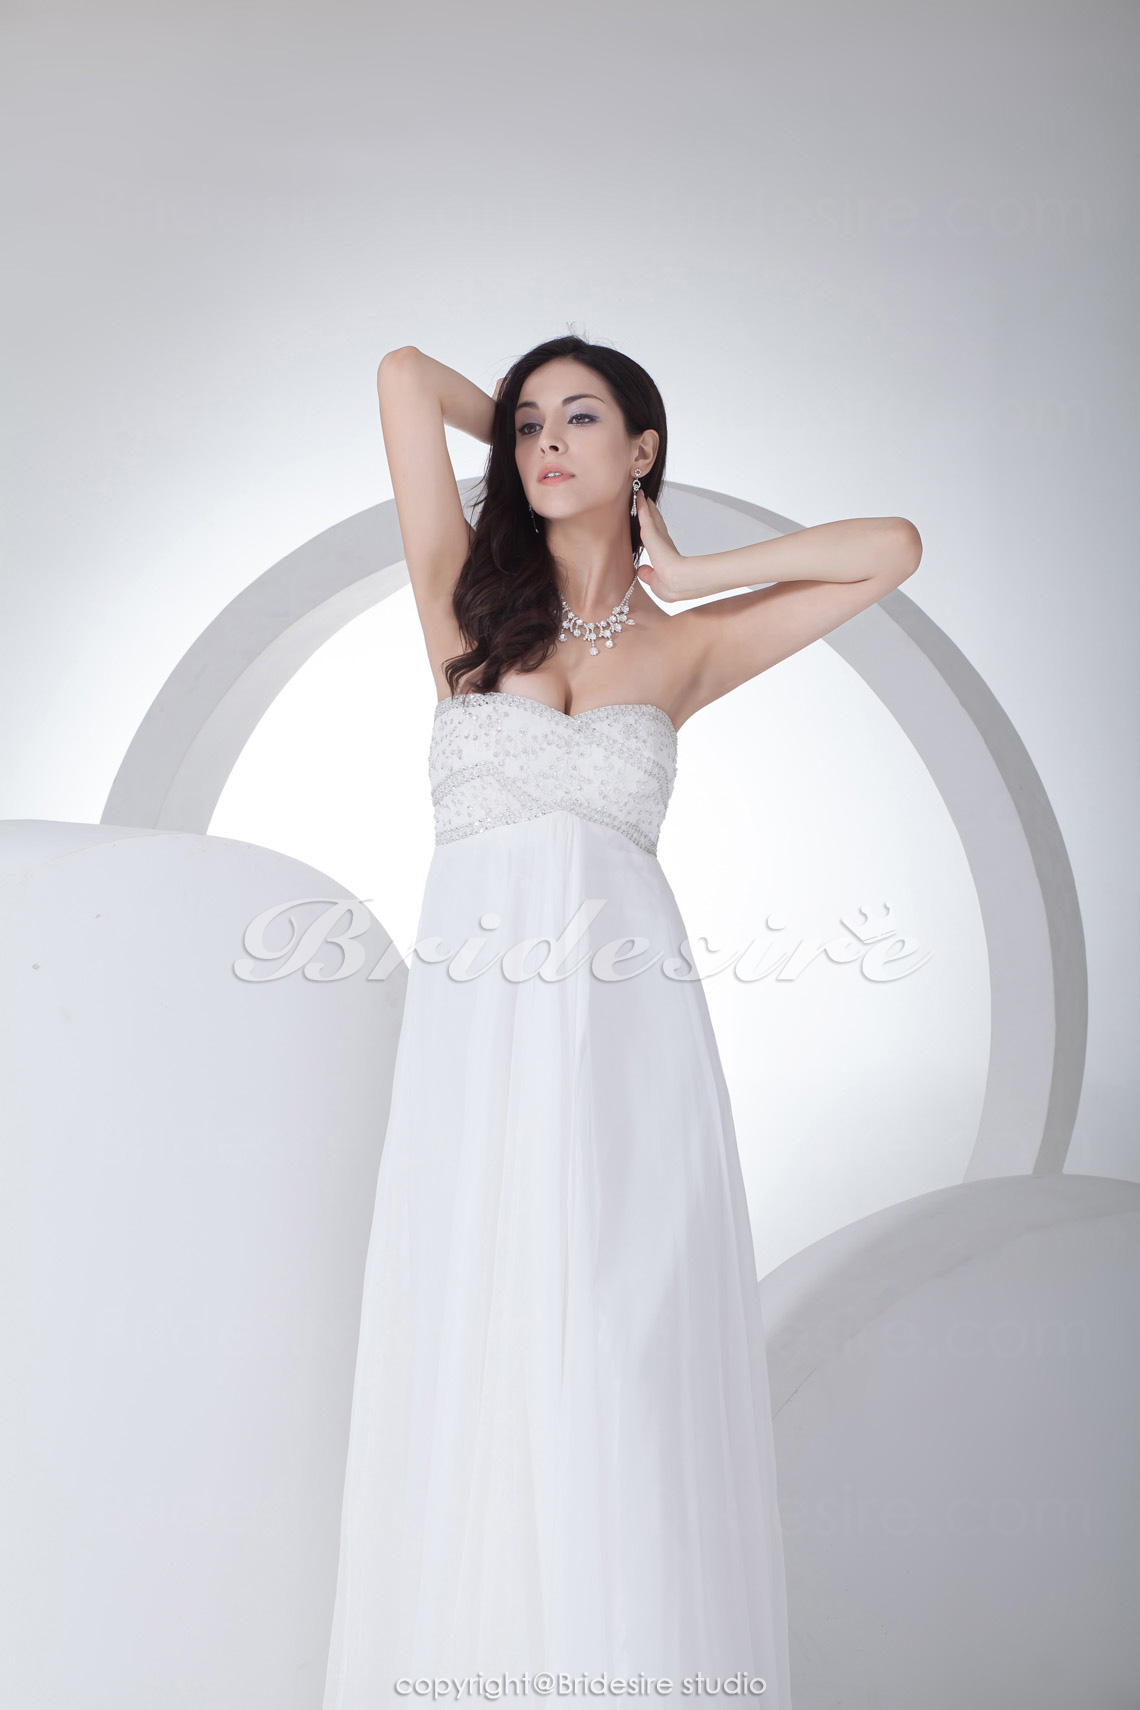 Schede/Kolom Strapless Vloer Lengte Mouwloos Chiffon